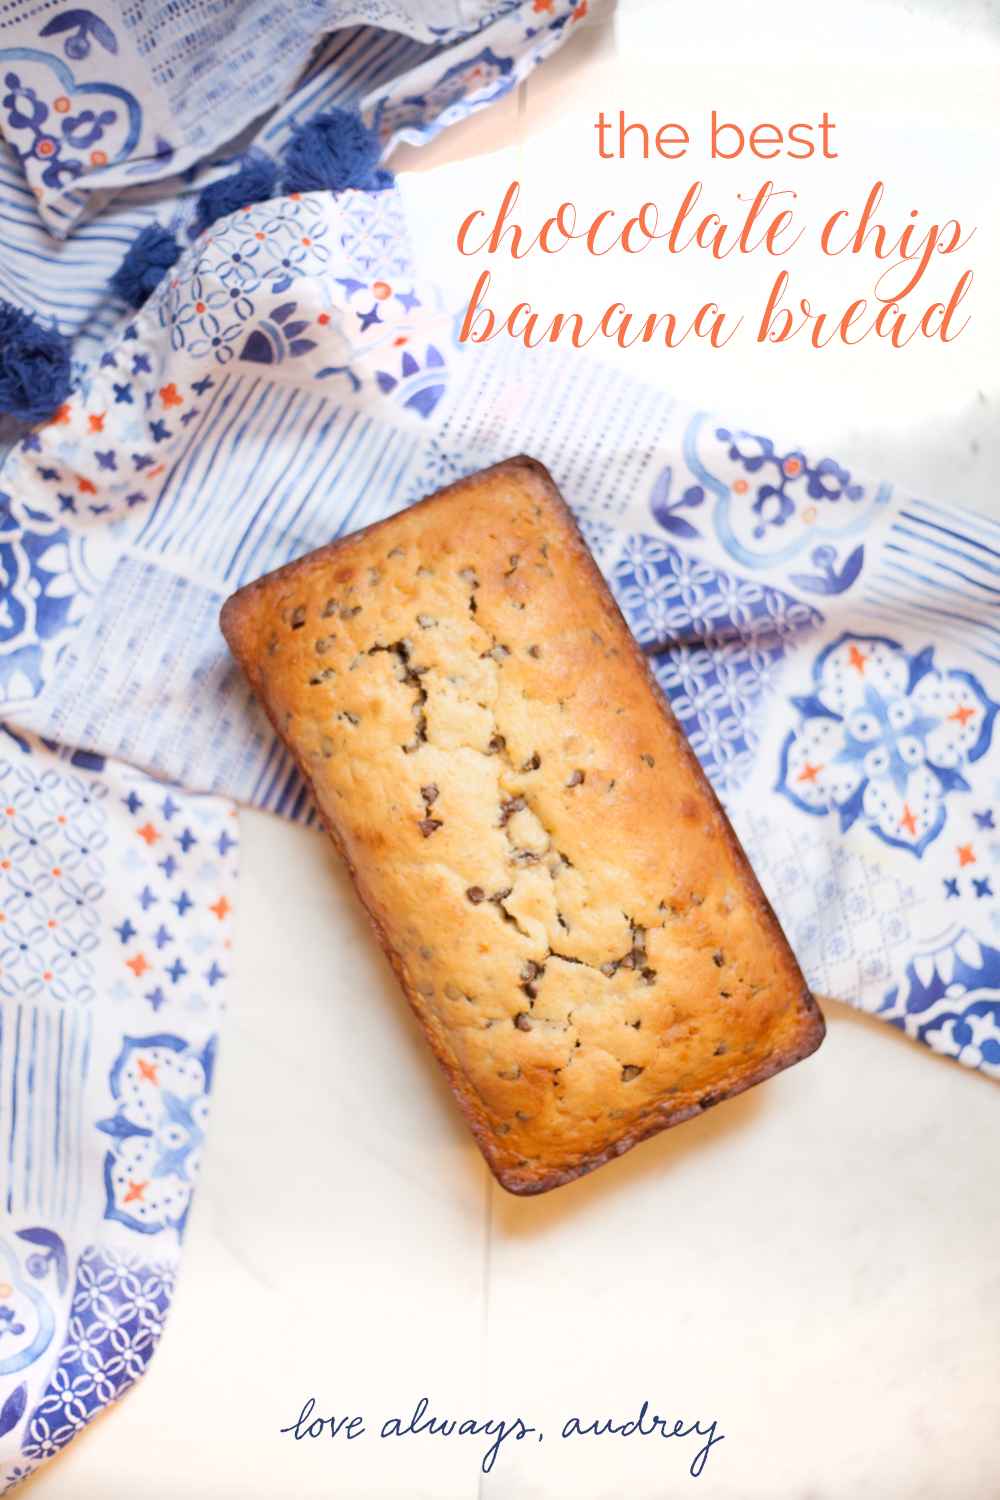 The very best Chocolate Chip Banana Bread recipe!